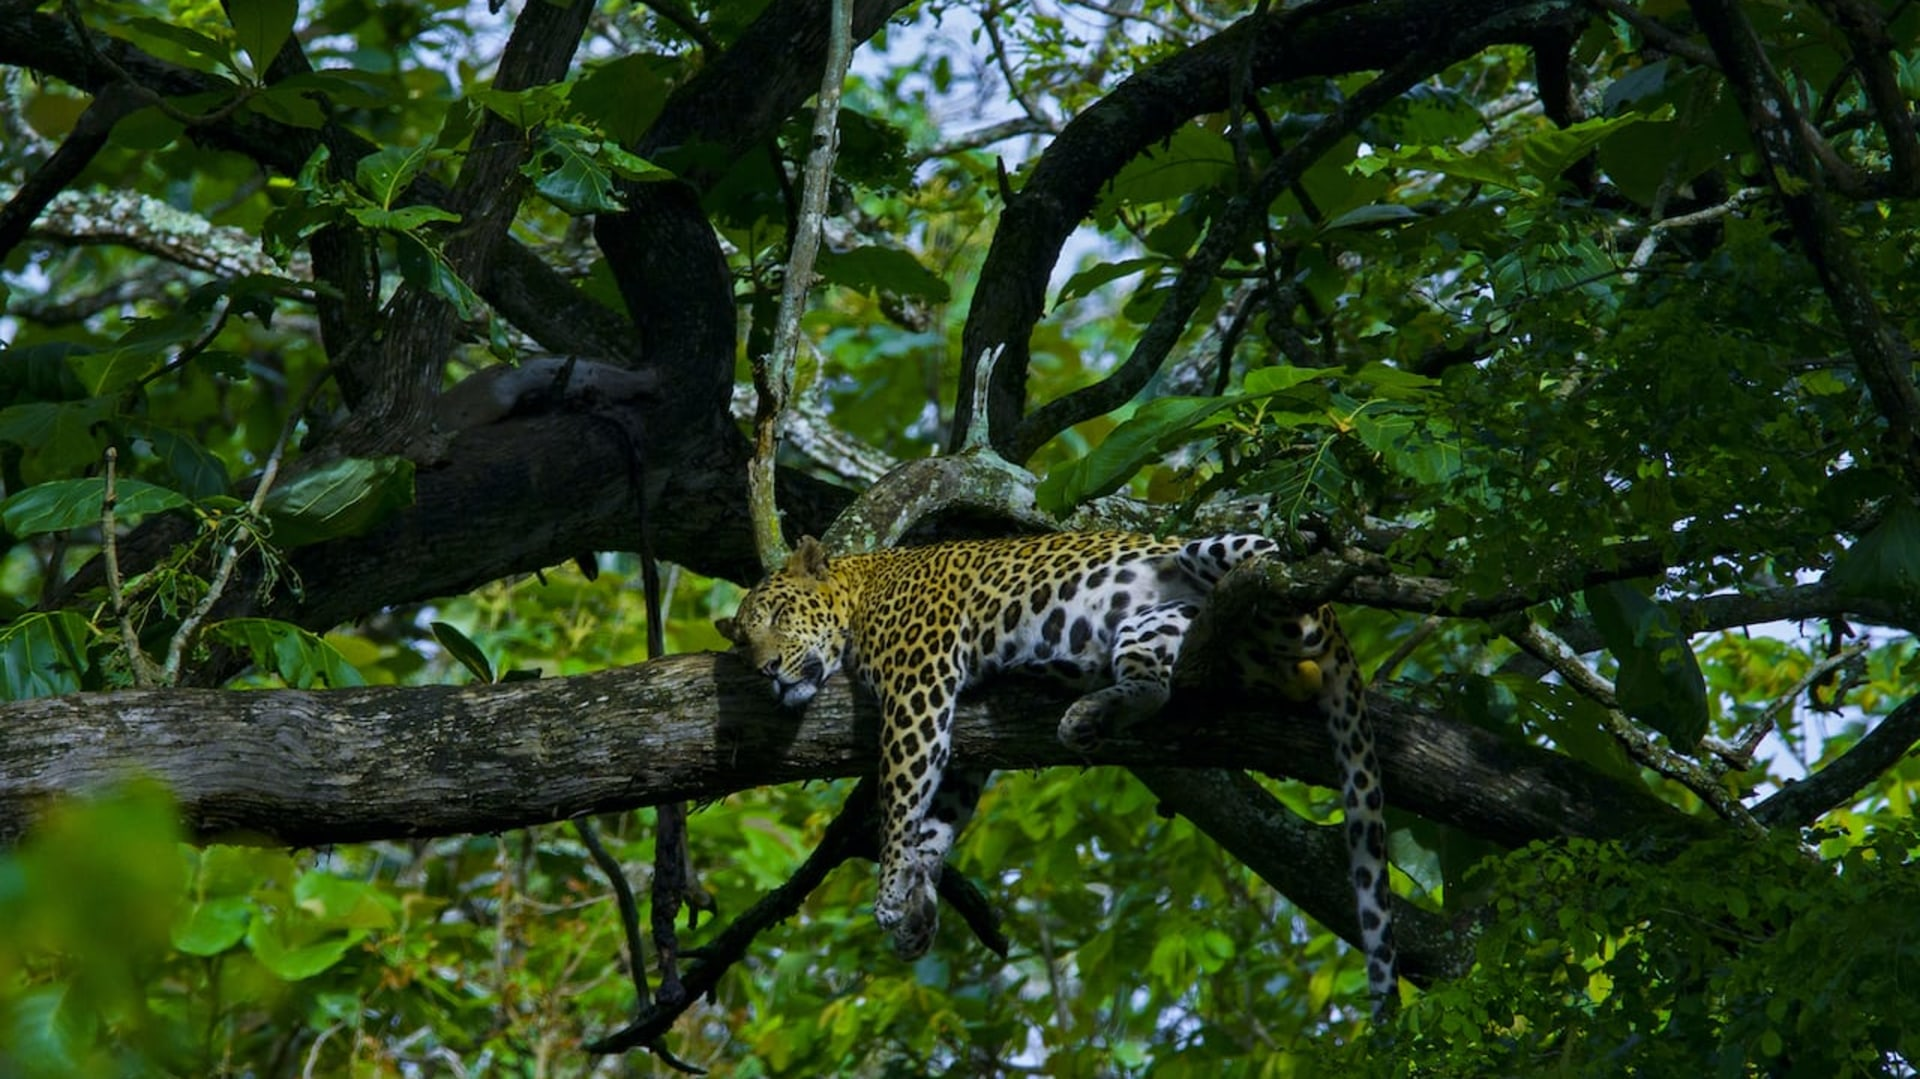 How to Savour a Forest: Gratitude for the Abundance of Nagarhole National Park